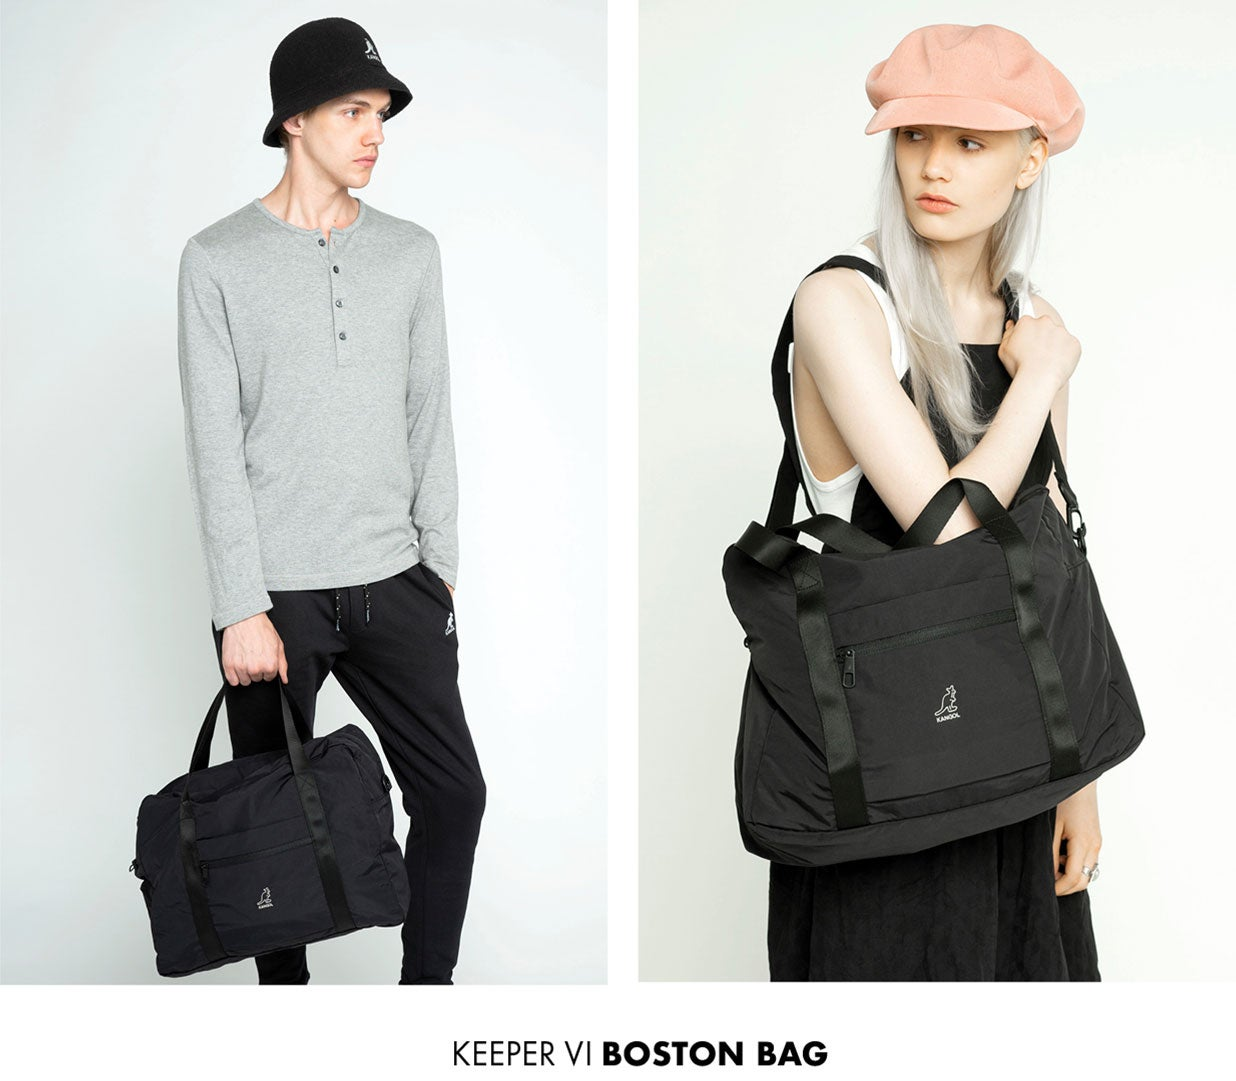 The Keeper VI Boston Bag